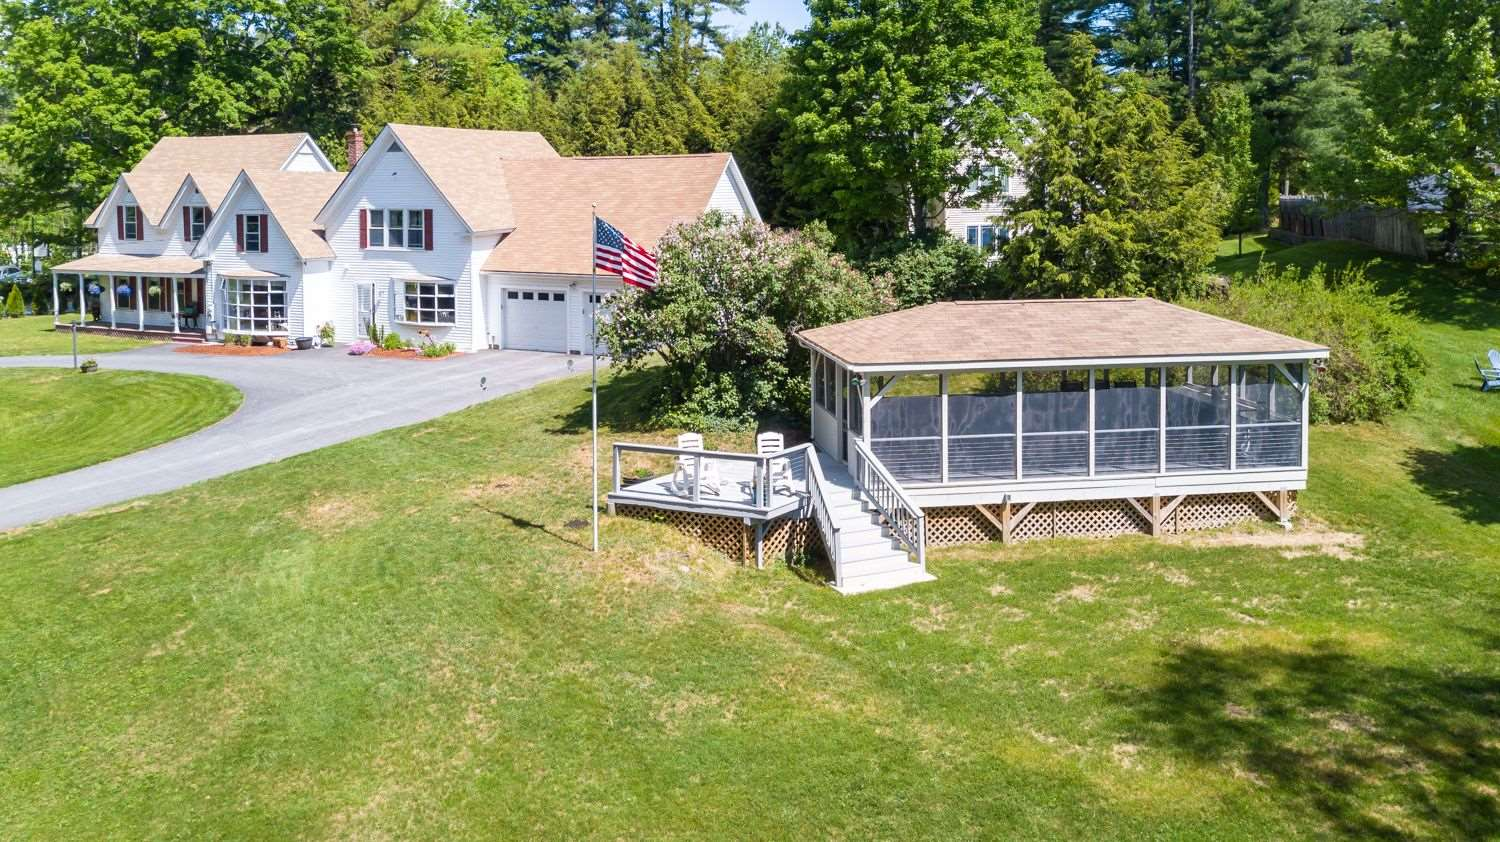 MLS 4808891: 85 Chester Road, Derry NH